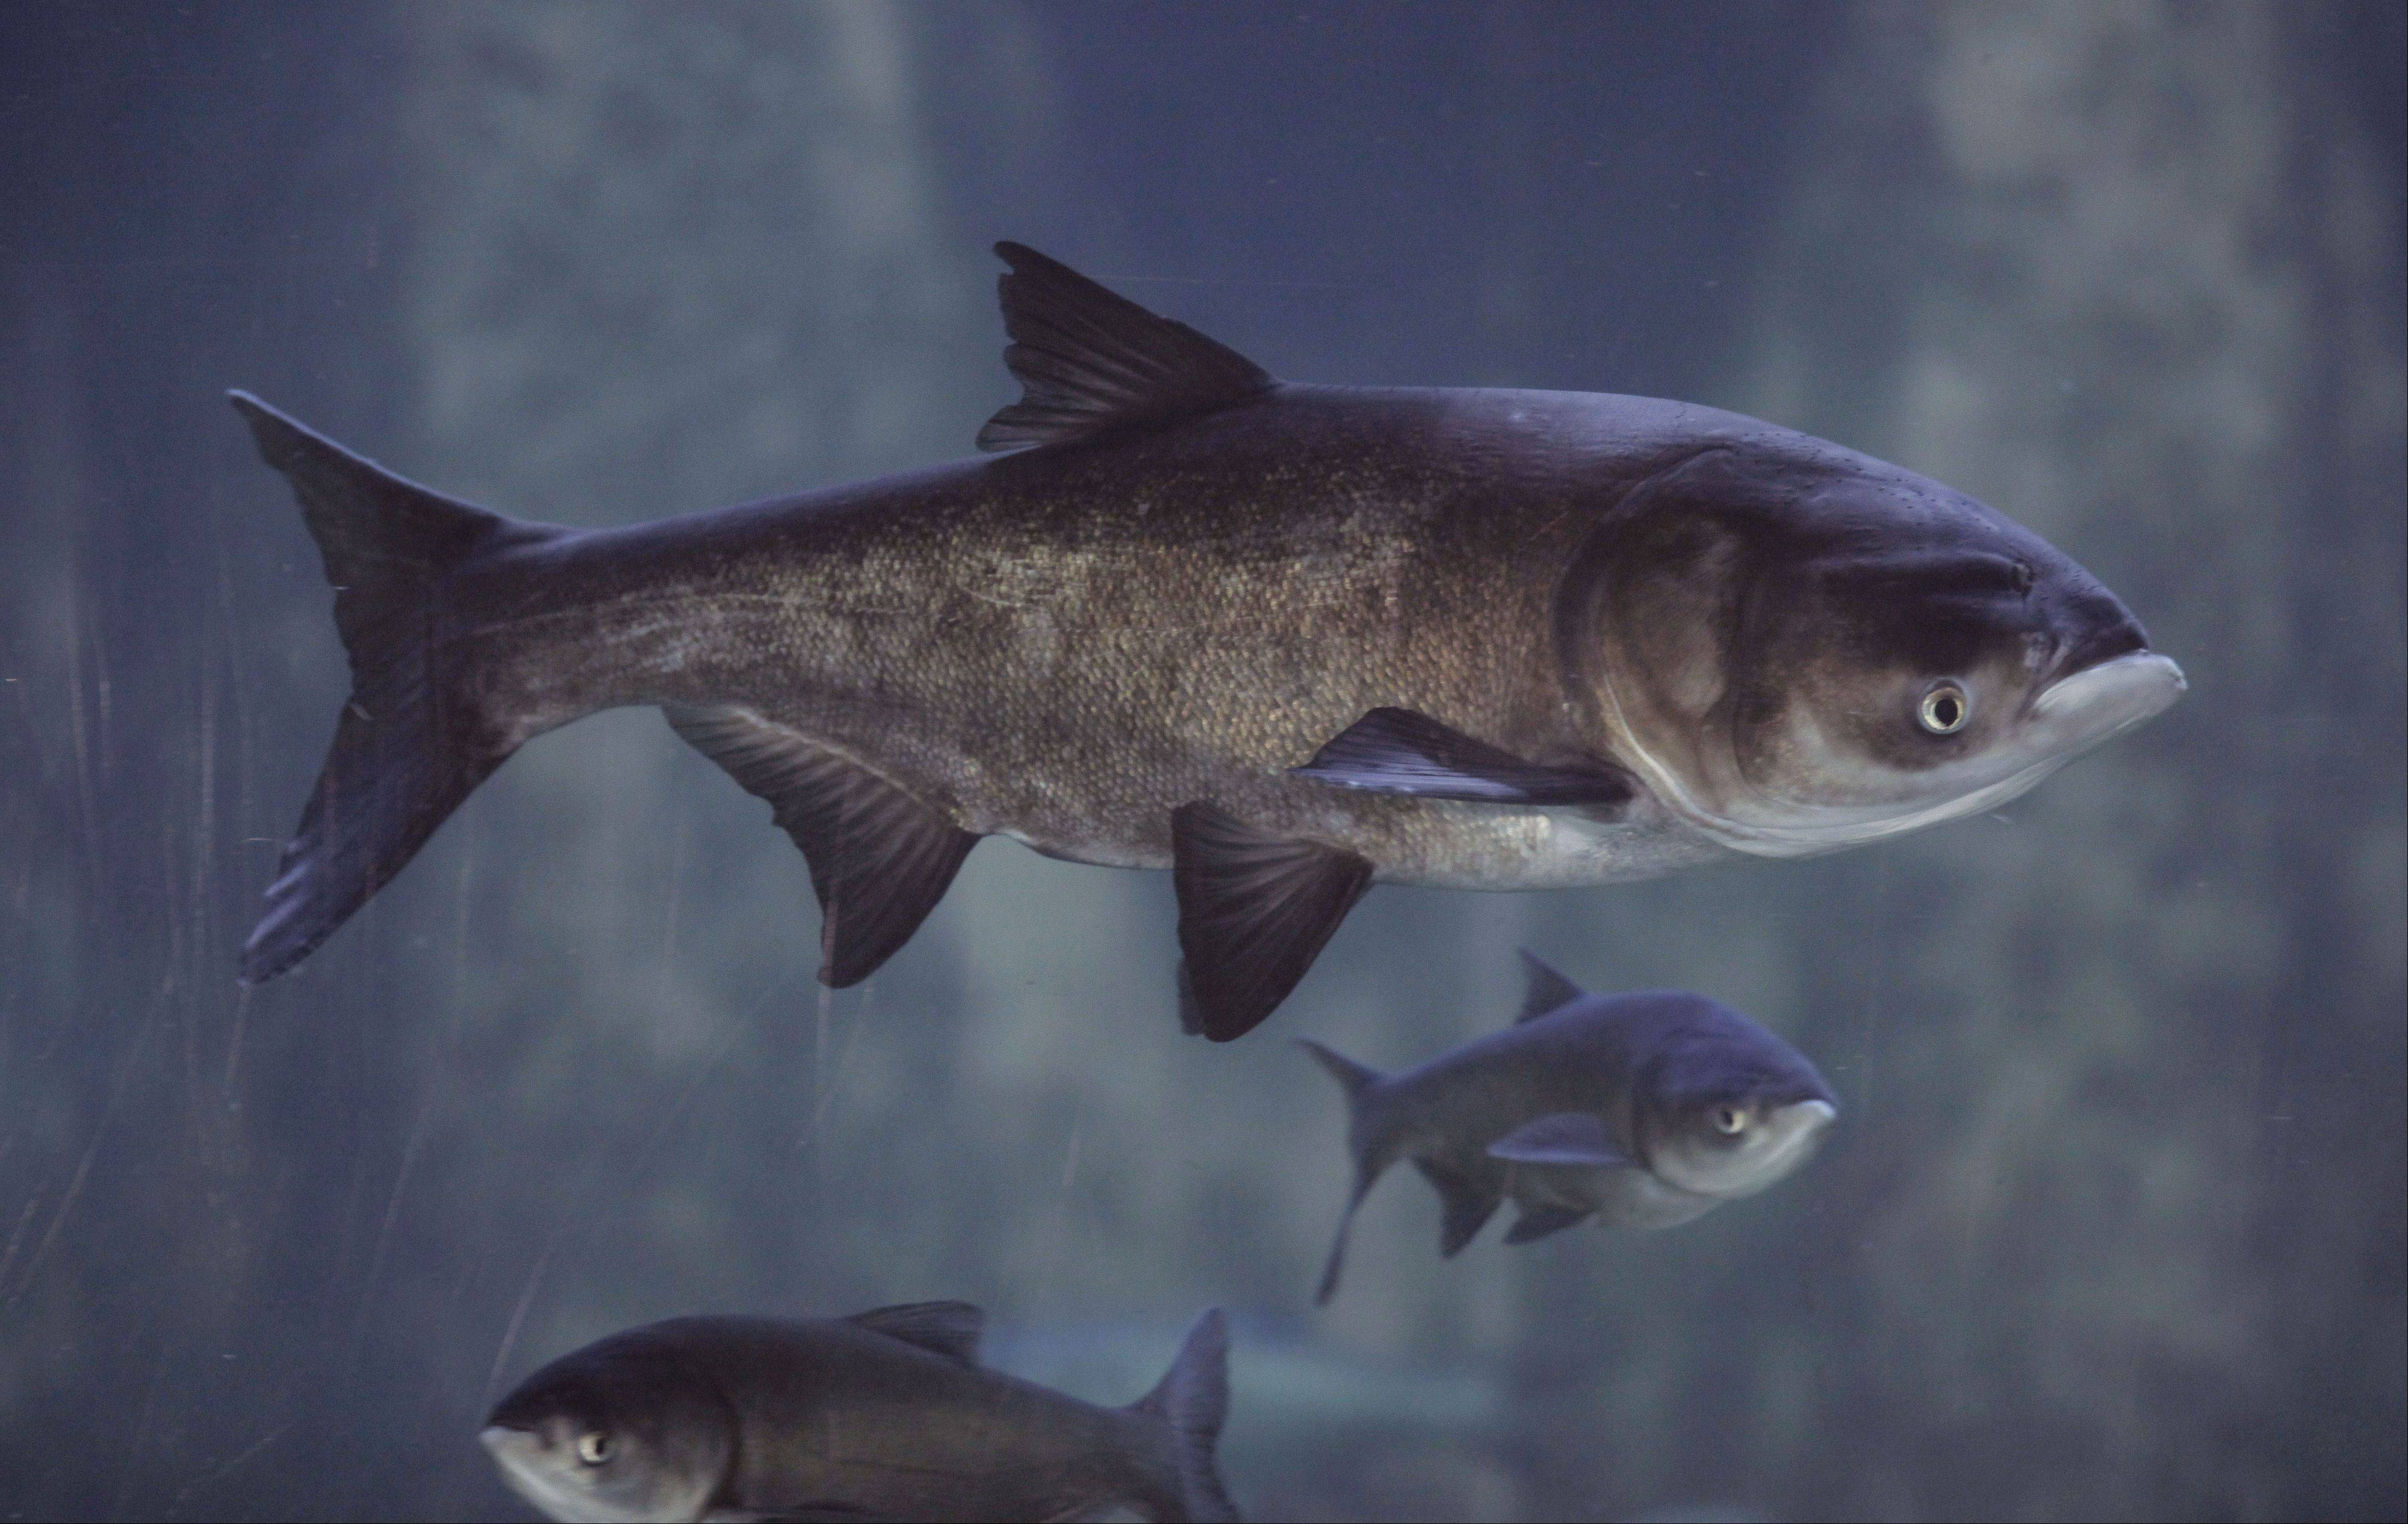 Some scientists say if Asian carp establish a foothold in the Great Lakes, they could unravel the food web by gobbling plankton needed by smaller fish that feed prized sport varieties such as walleye and trout.